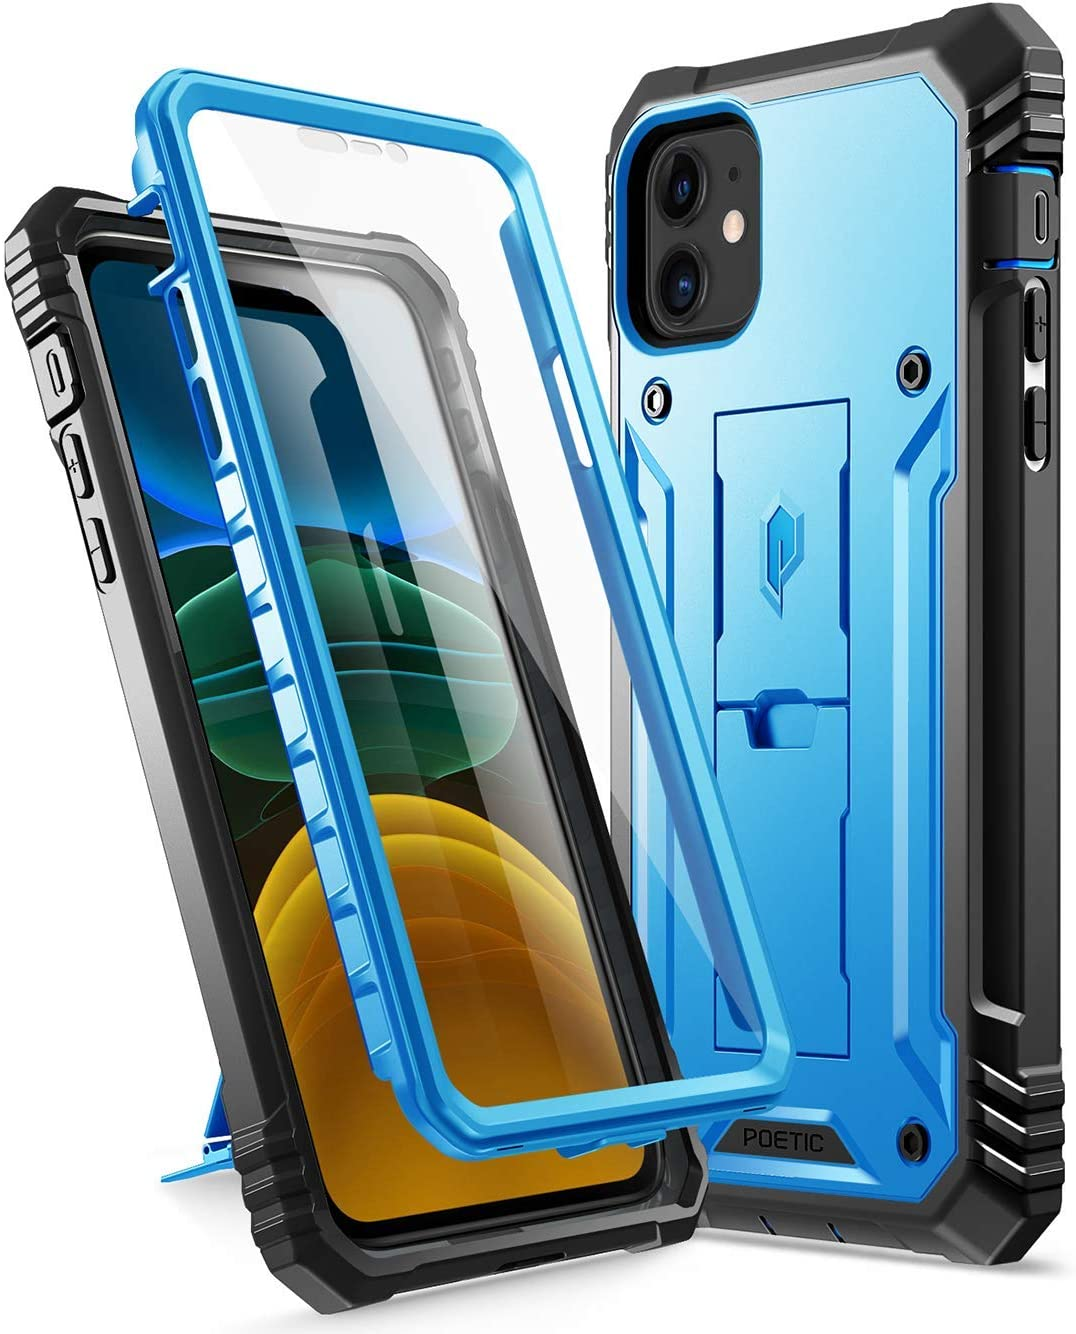 iPhone 11 Rugged Case with Kickstand, Poetic Full-Body Dual-Layer Shockproof Protective Cover, Built-in-Screen Protector, Revolution Series, for Apple iPhone 11 (2019) 6.1 Inch, Blue